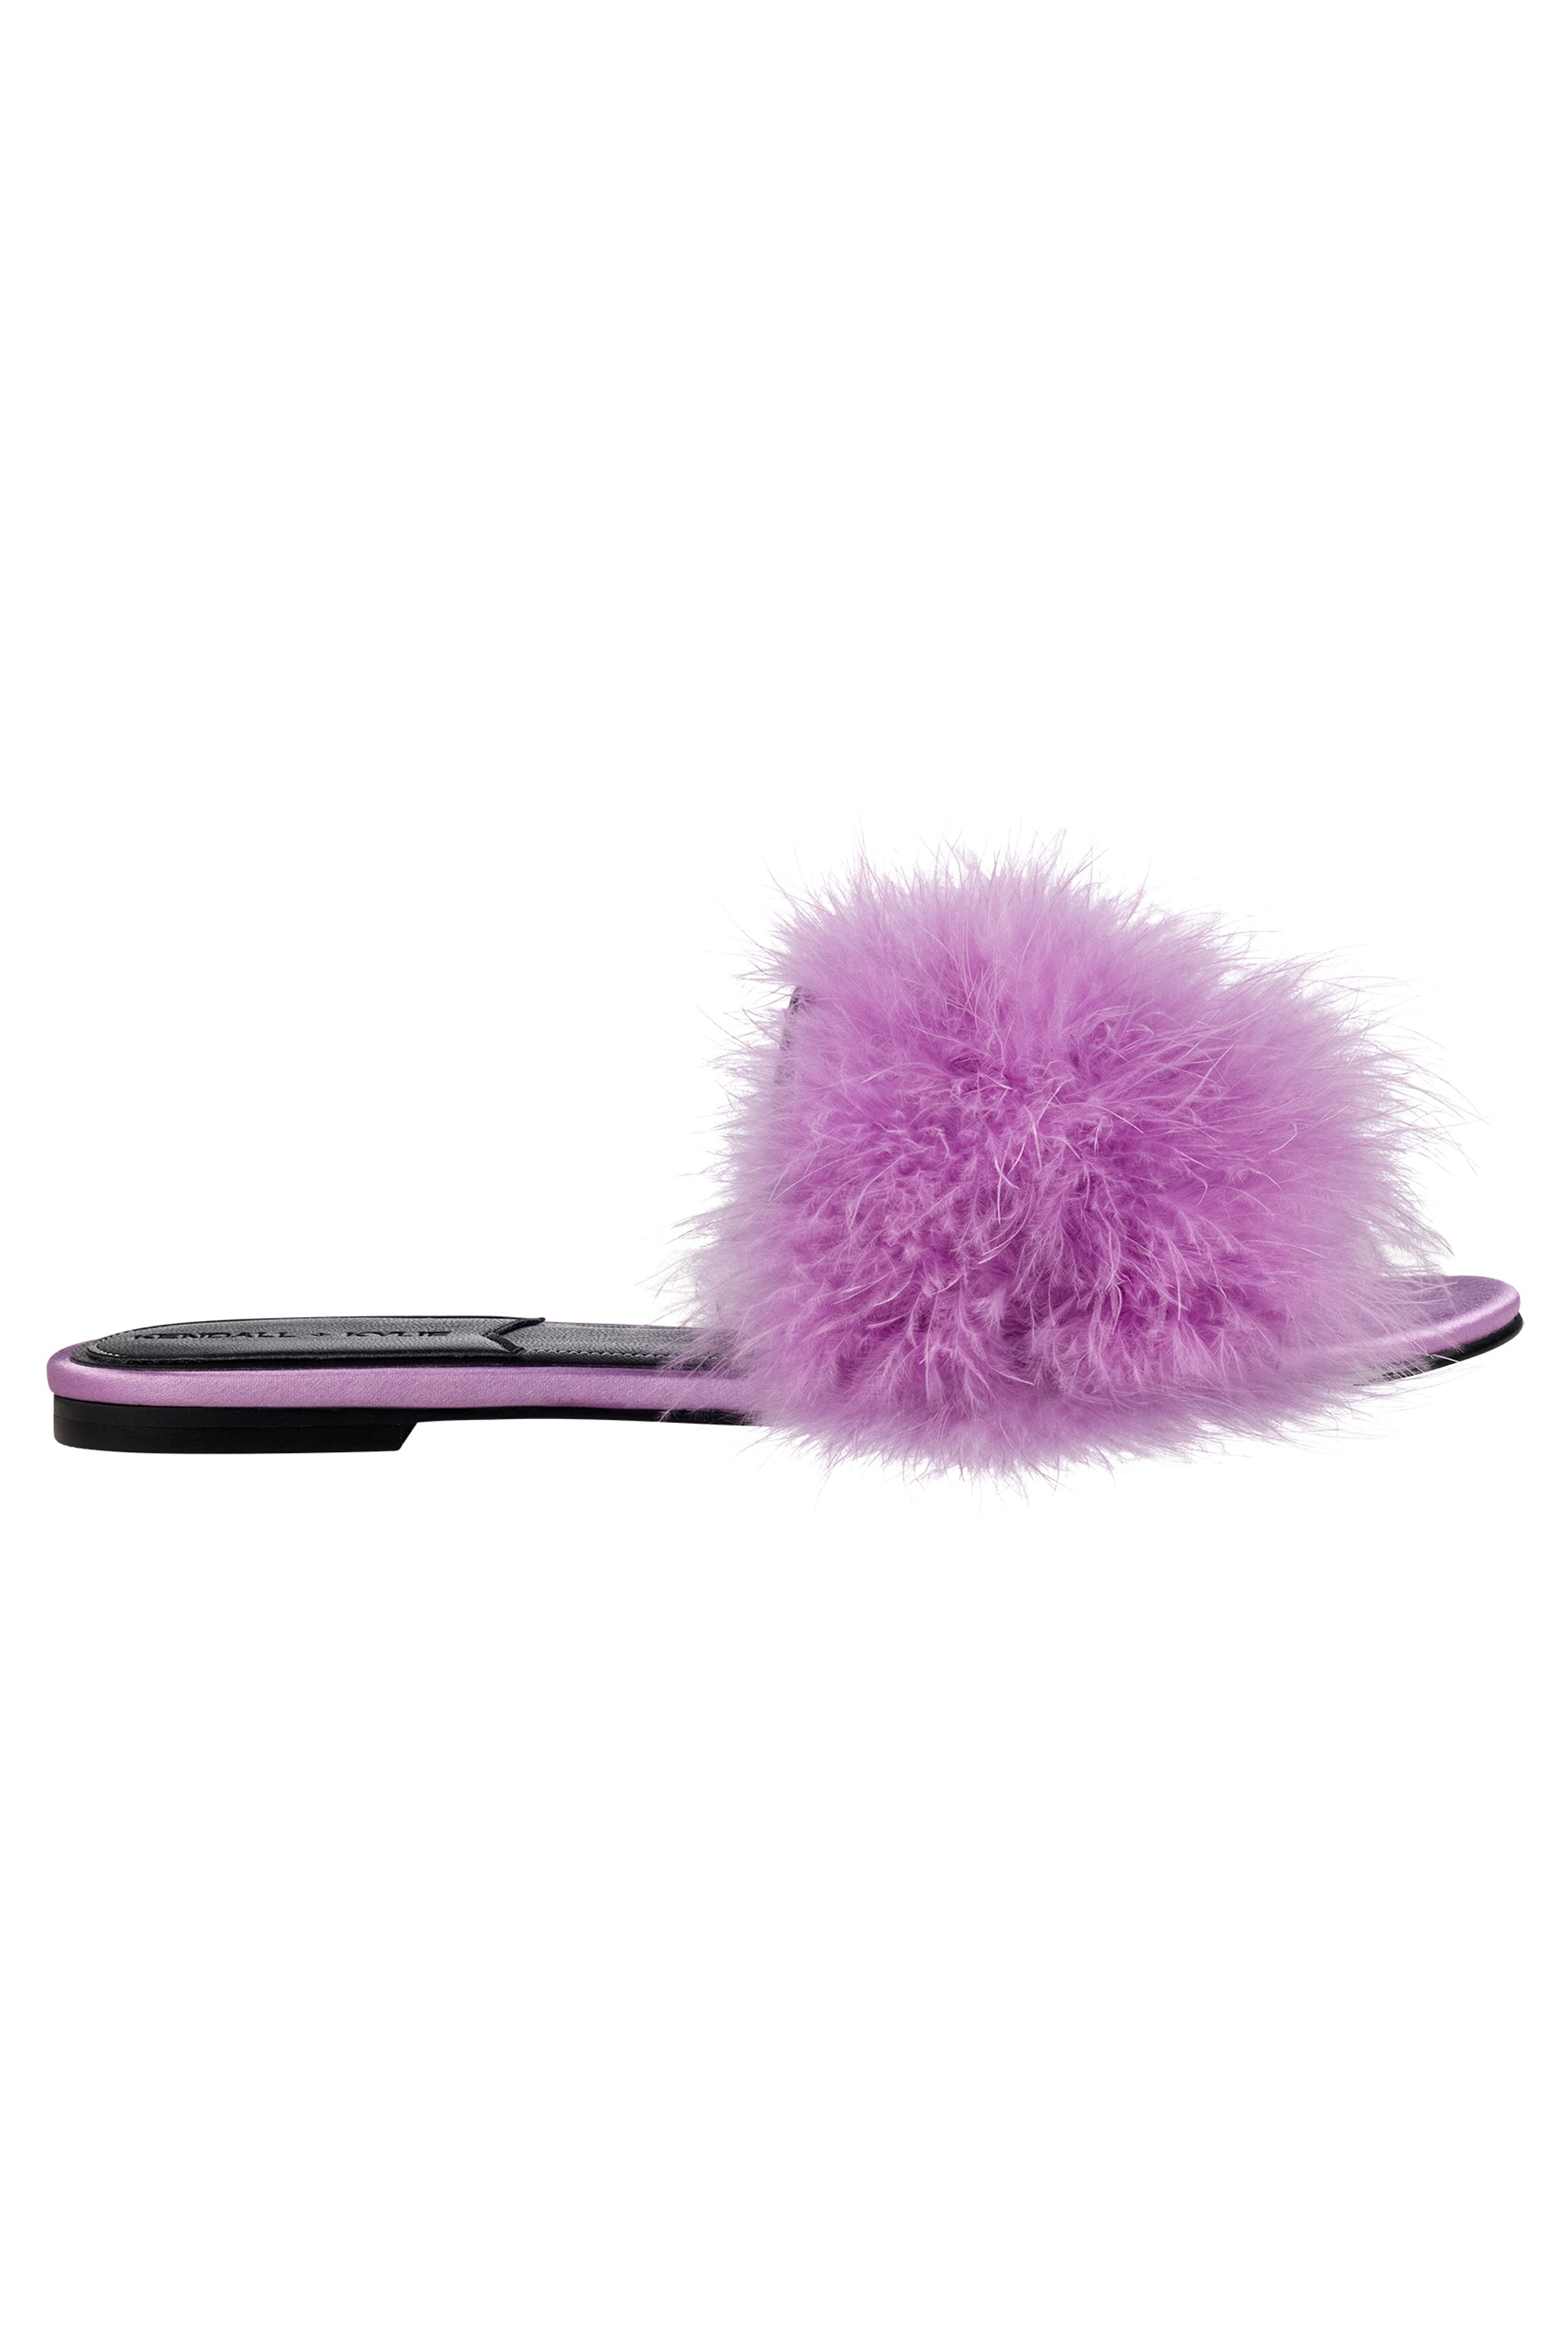 CHLOE FEATHER SLIDE SHOES by KENDALL + KYLIE